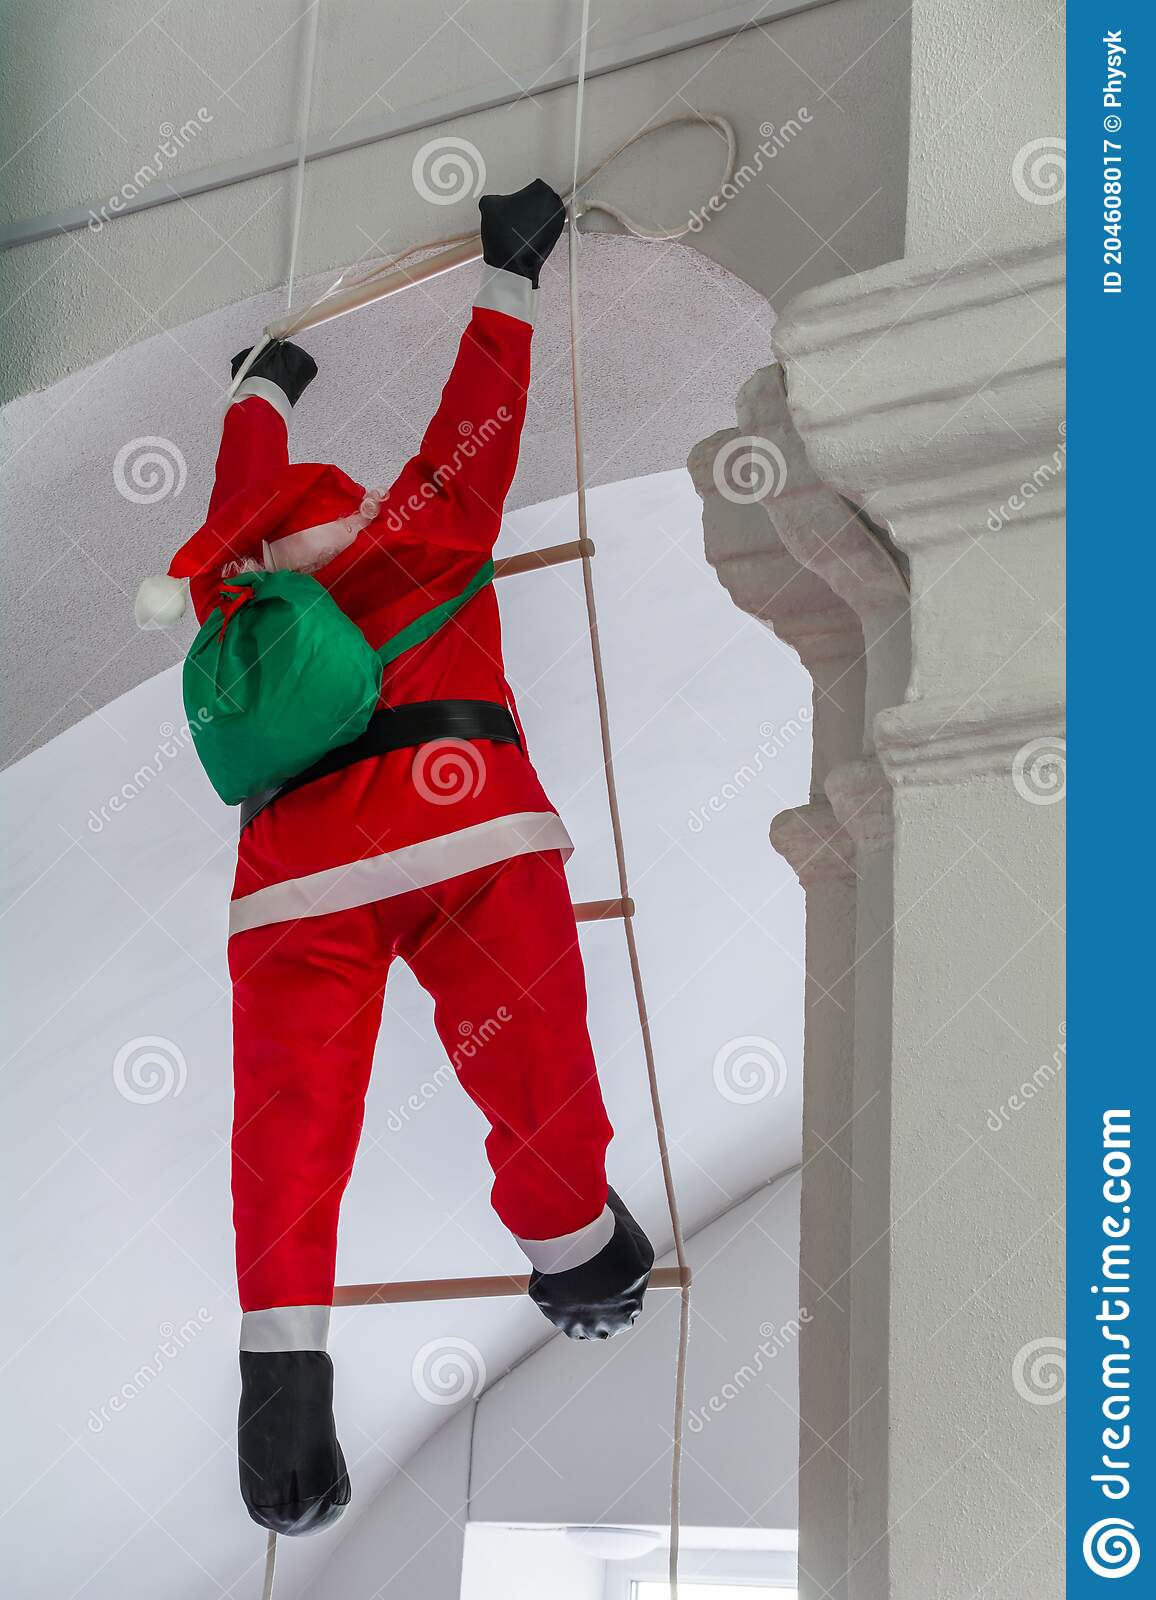 Christmas Decor Decorative Santa Claus With Gifts Climbs The Rope Ladder Stock Image Image Of Cornice Claus 204608017